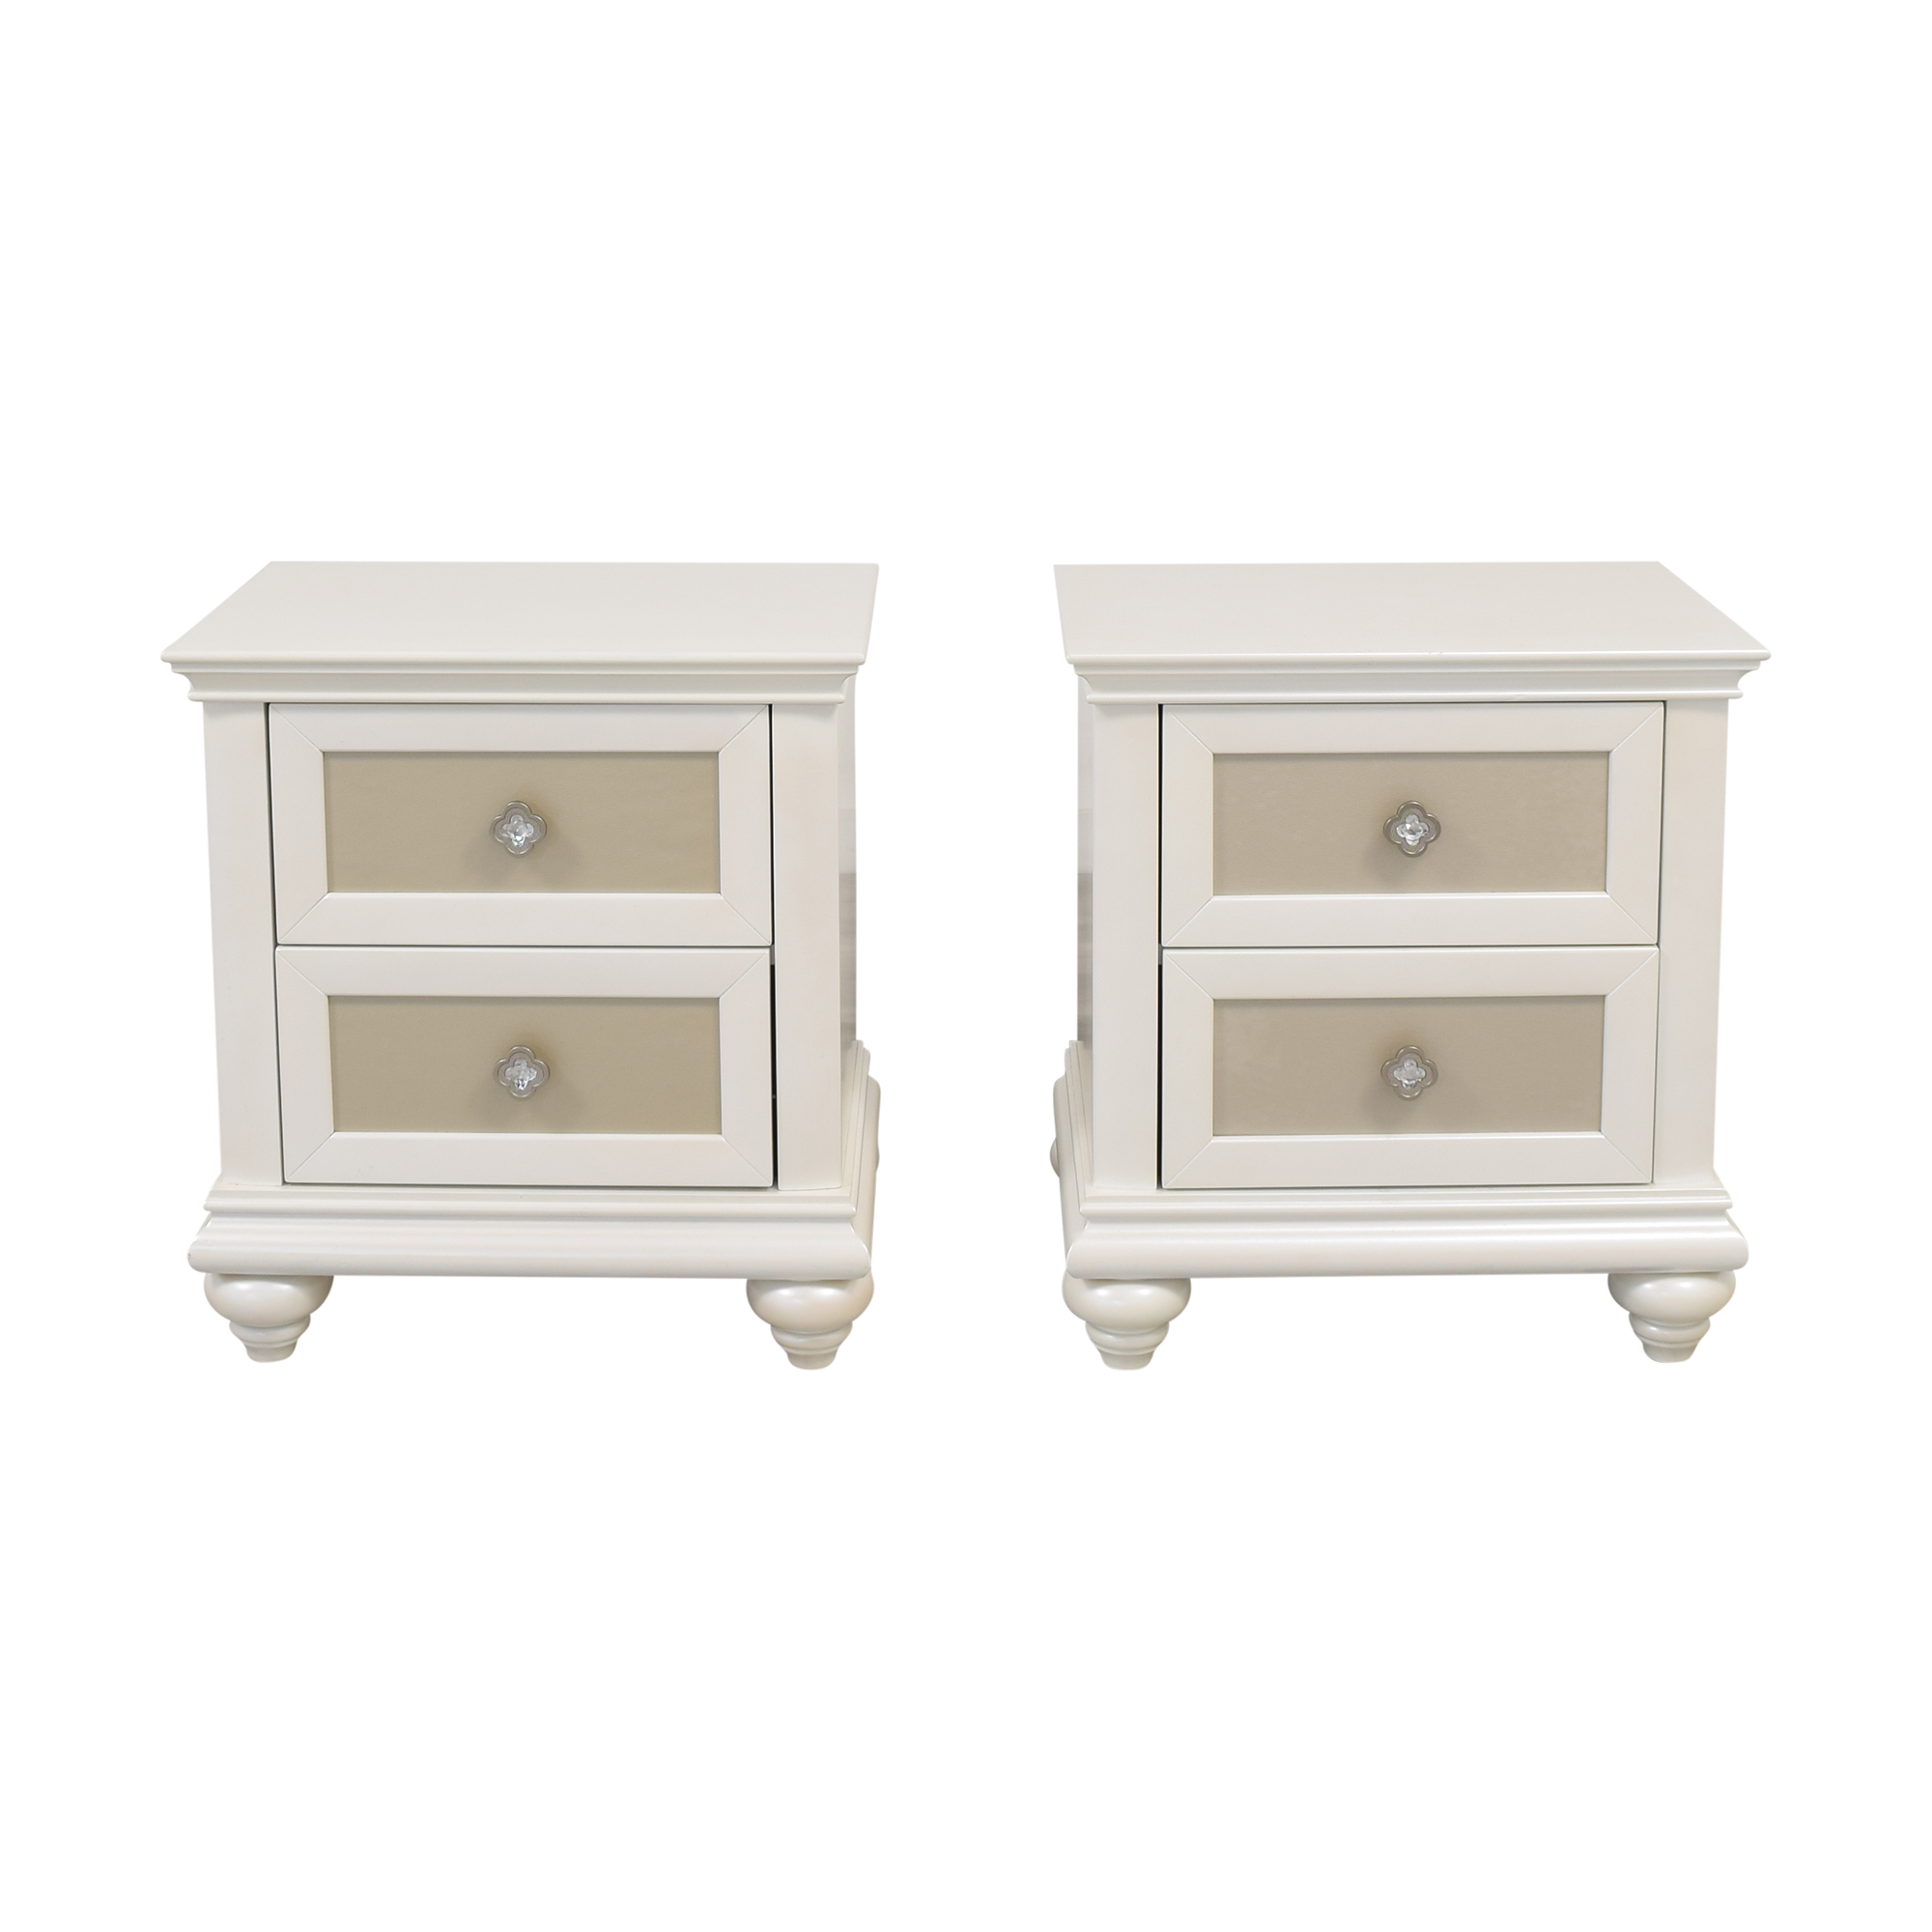 buy Raymour & Flanigan Paris Nightstands Raymour & Flanigan Tables